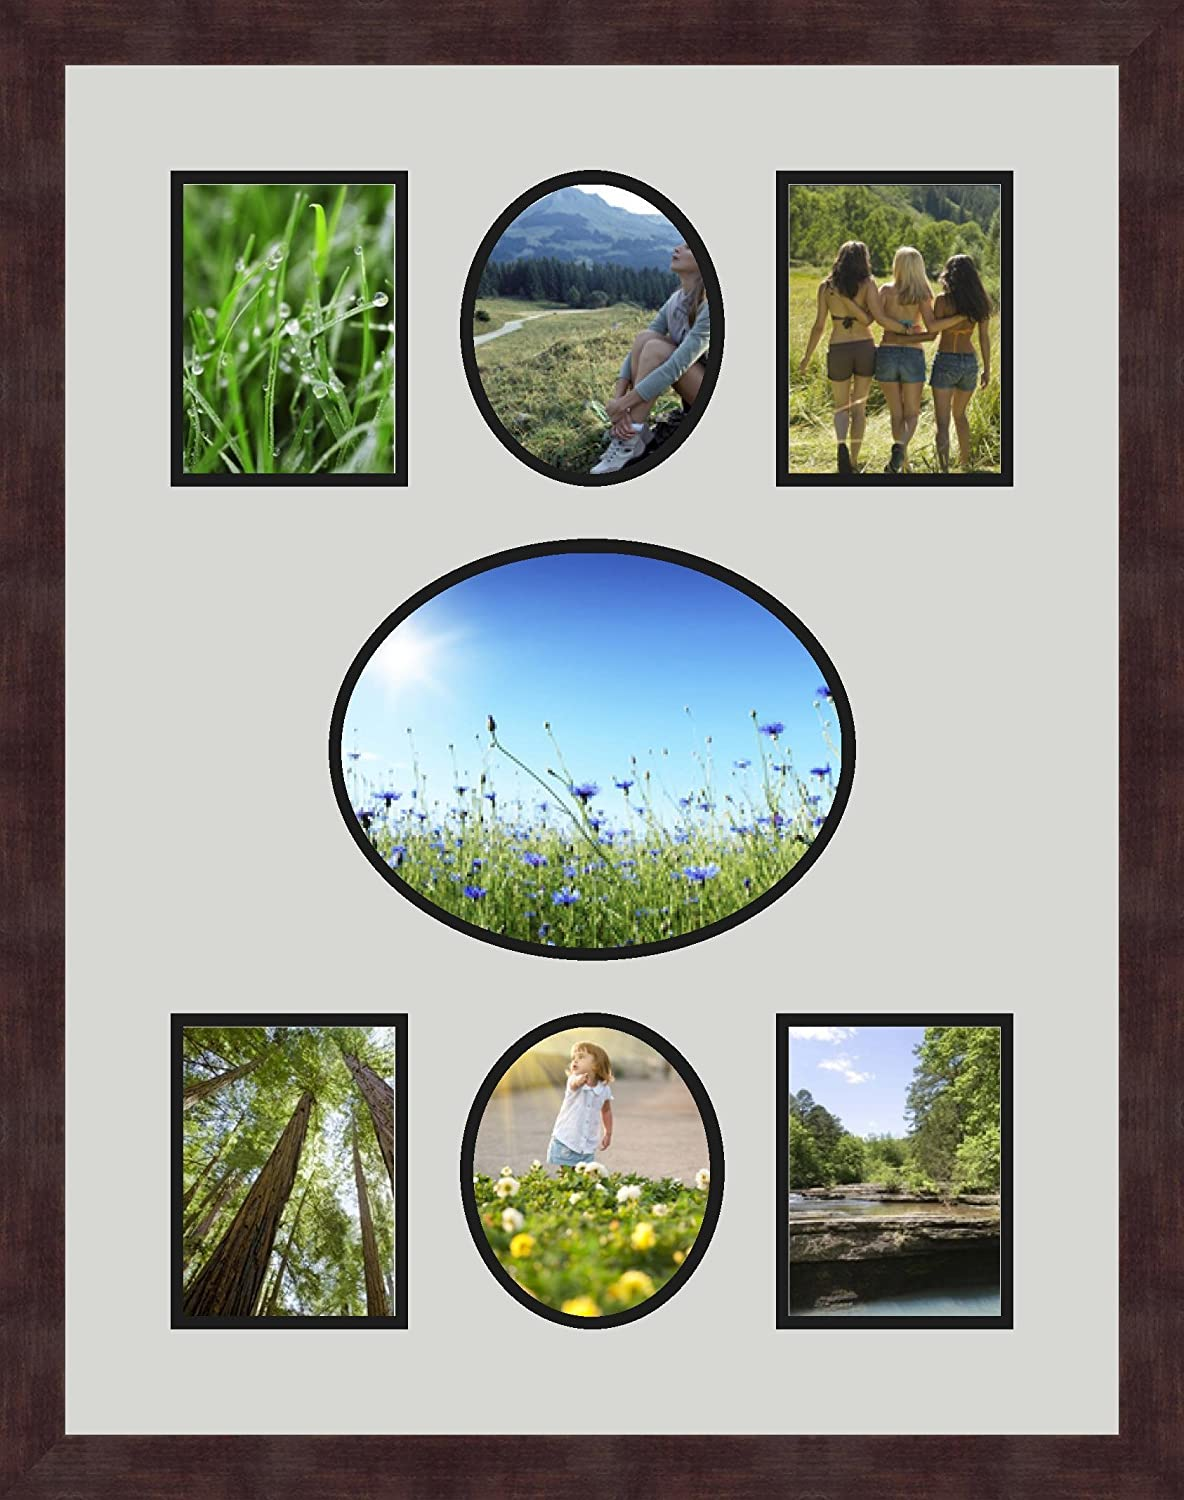 Art to Frames Double-Multimat-623-756//89-FRBW26061 Collage Frame Photo Mat Double Mat with 4-4.5x6 and 2-5x6 and 1-8x10 Openings and Espresso Frame